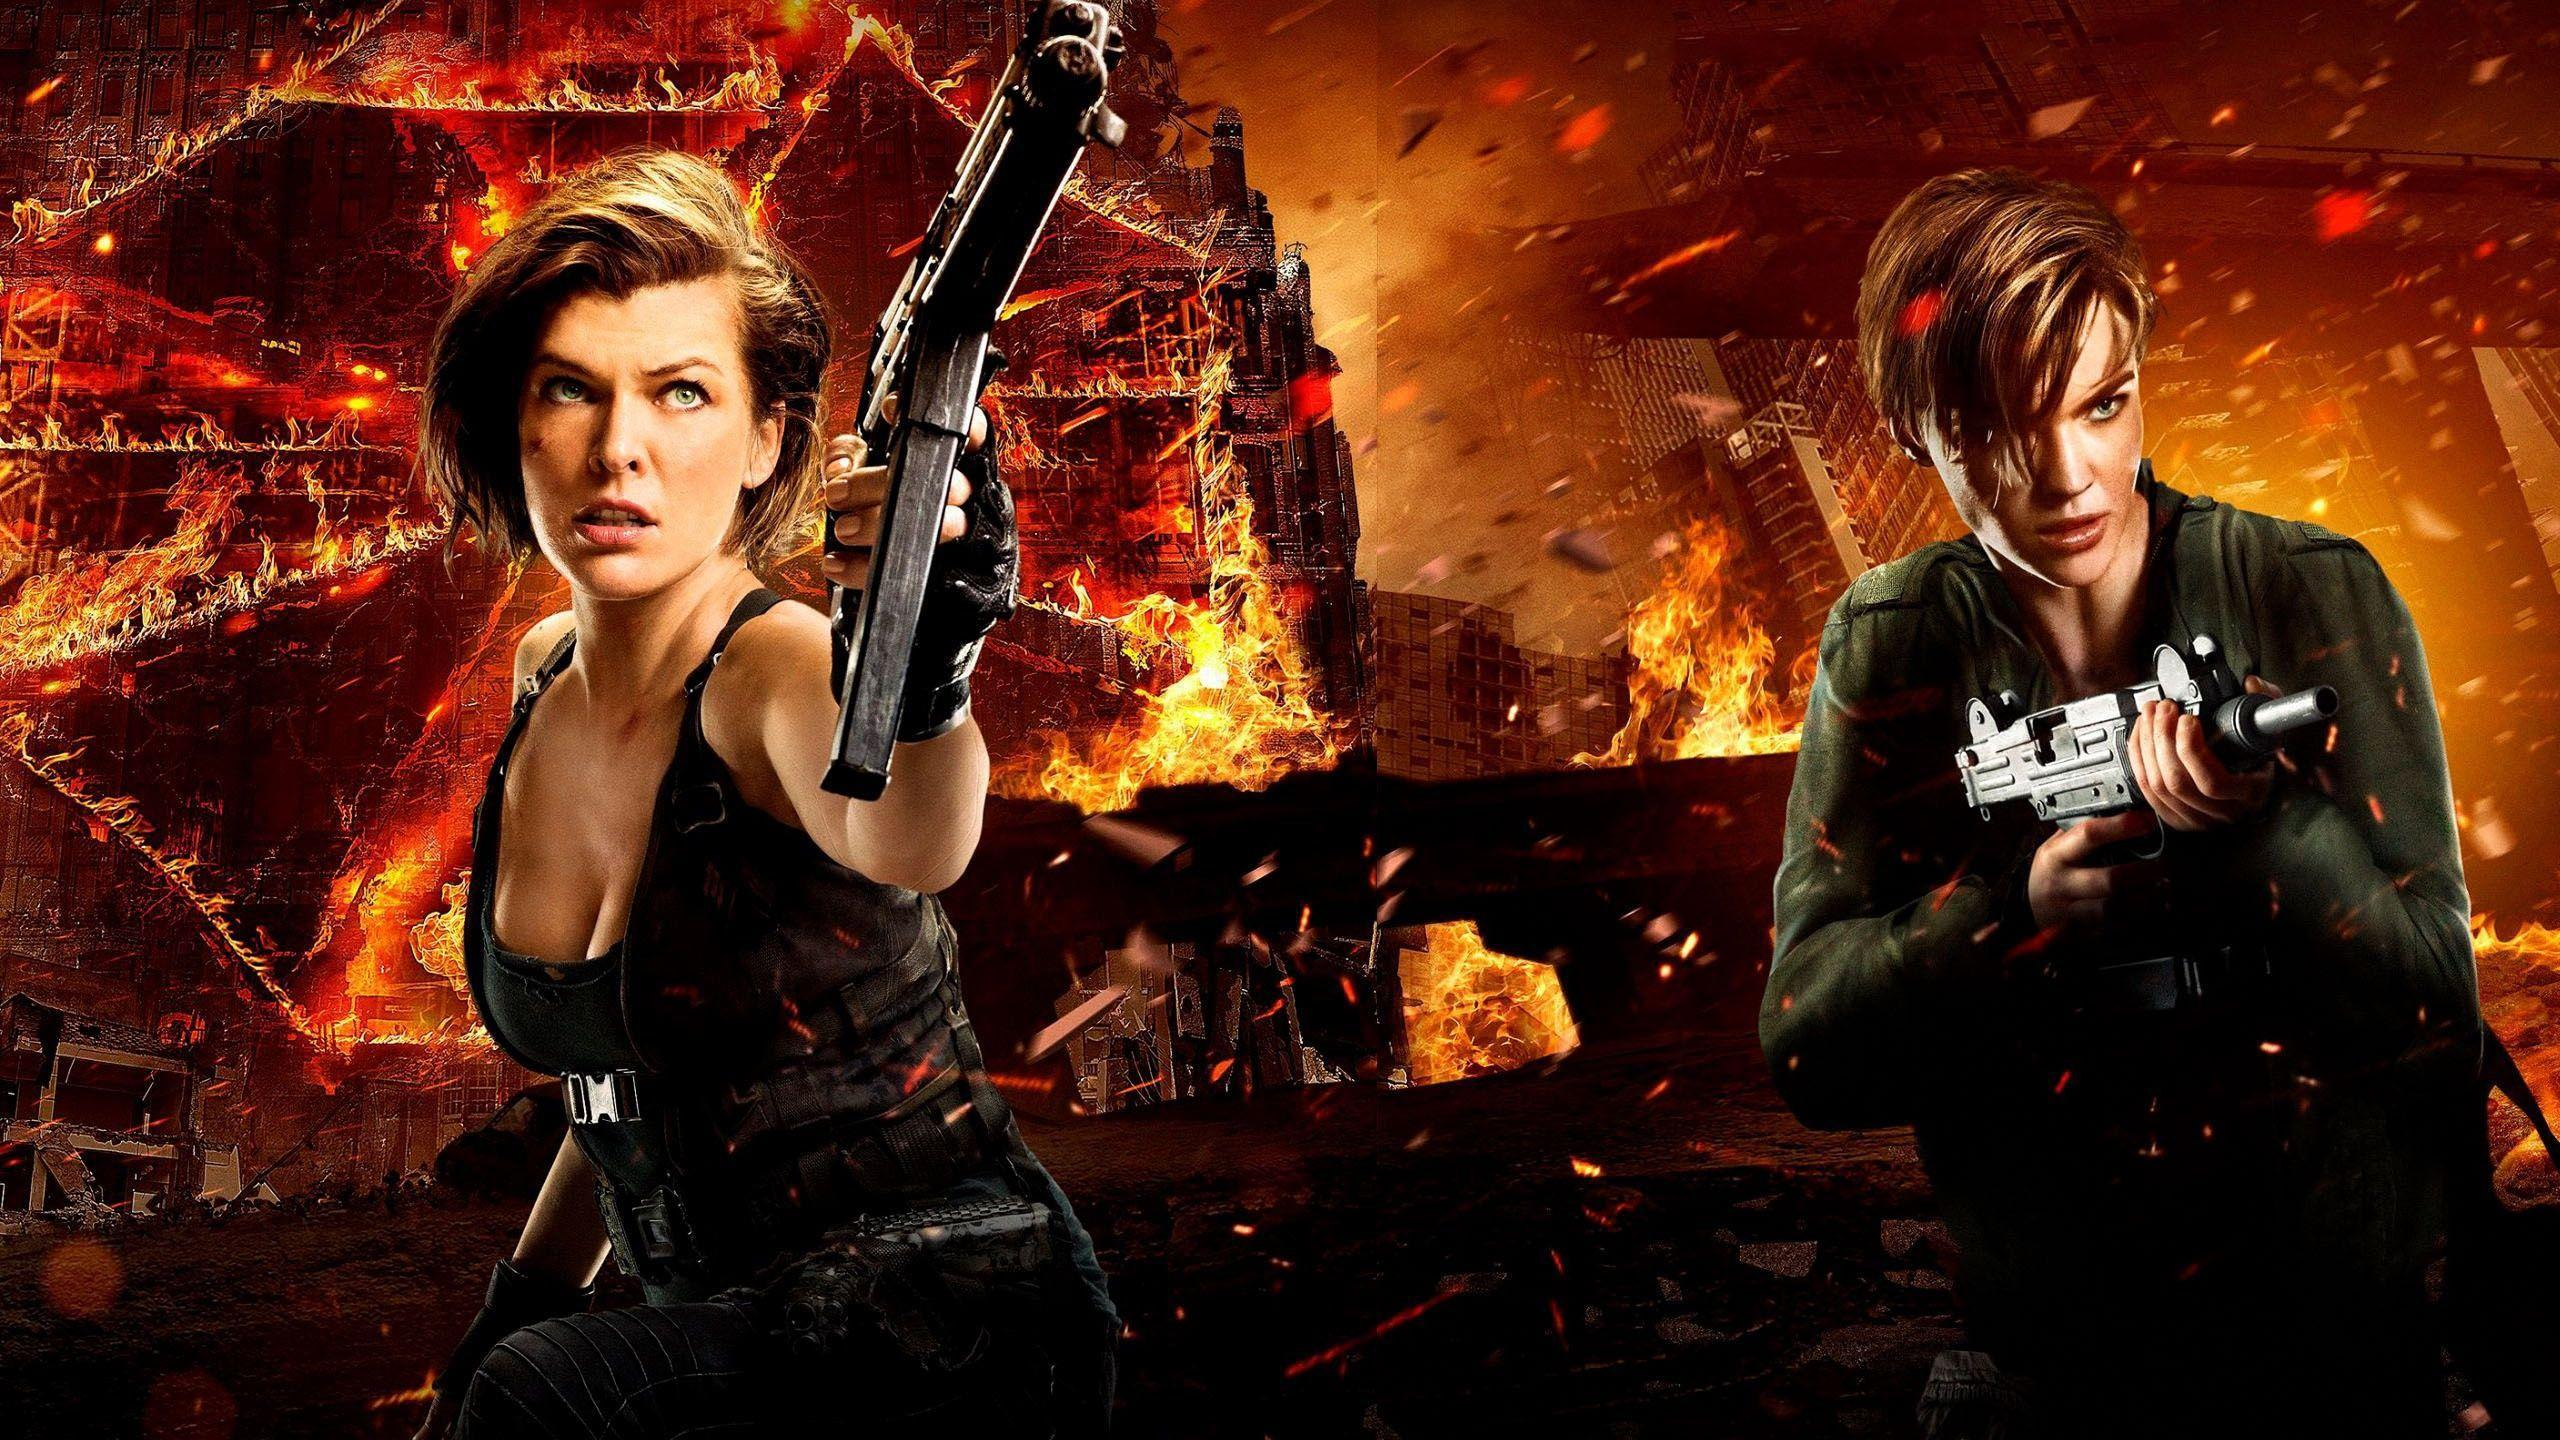 Ruby Rose Joins Milla Jovovich Family At Resident Evil: Ruby Rose Wallpapers